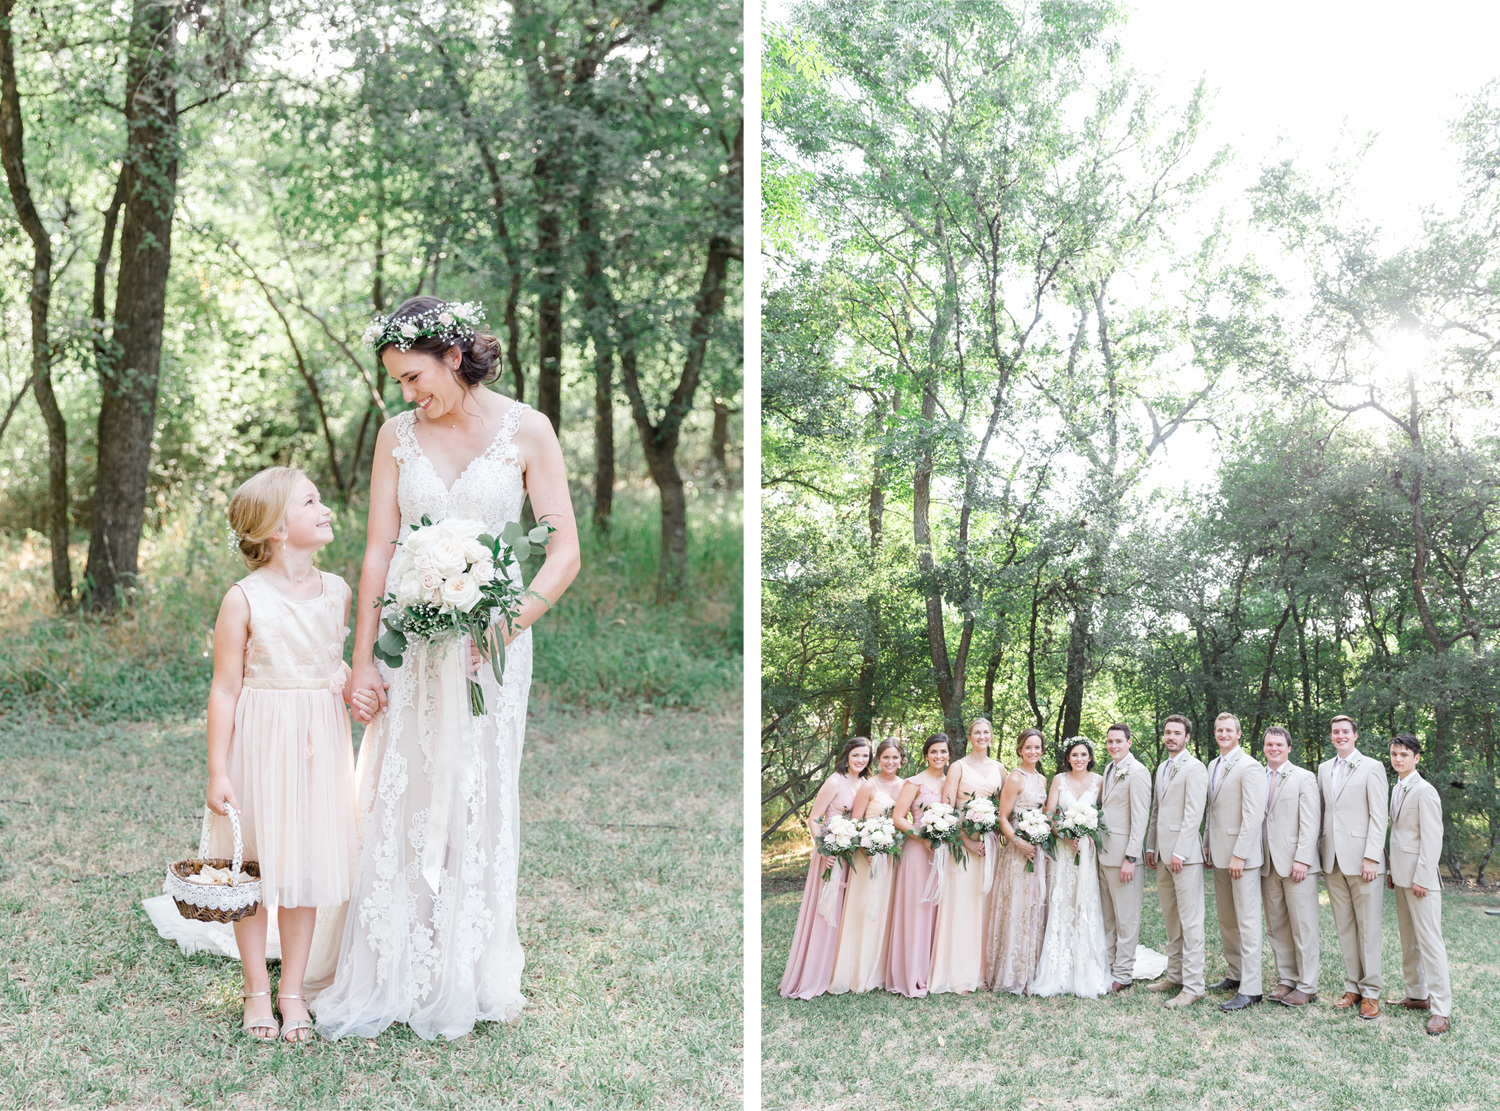 San Antonio Texas Wedding Engagement Photographer Photography Hill Country Texas Old Town Red Bud Hall Summer Blush Ivory Tan Rustic Classic Elegant Wedding San Antonio Austin Texas photographer 41